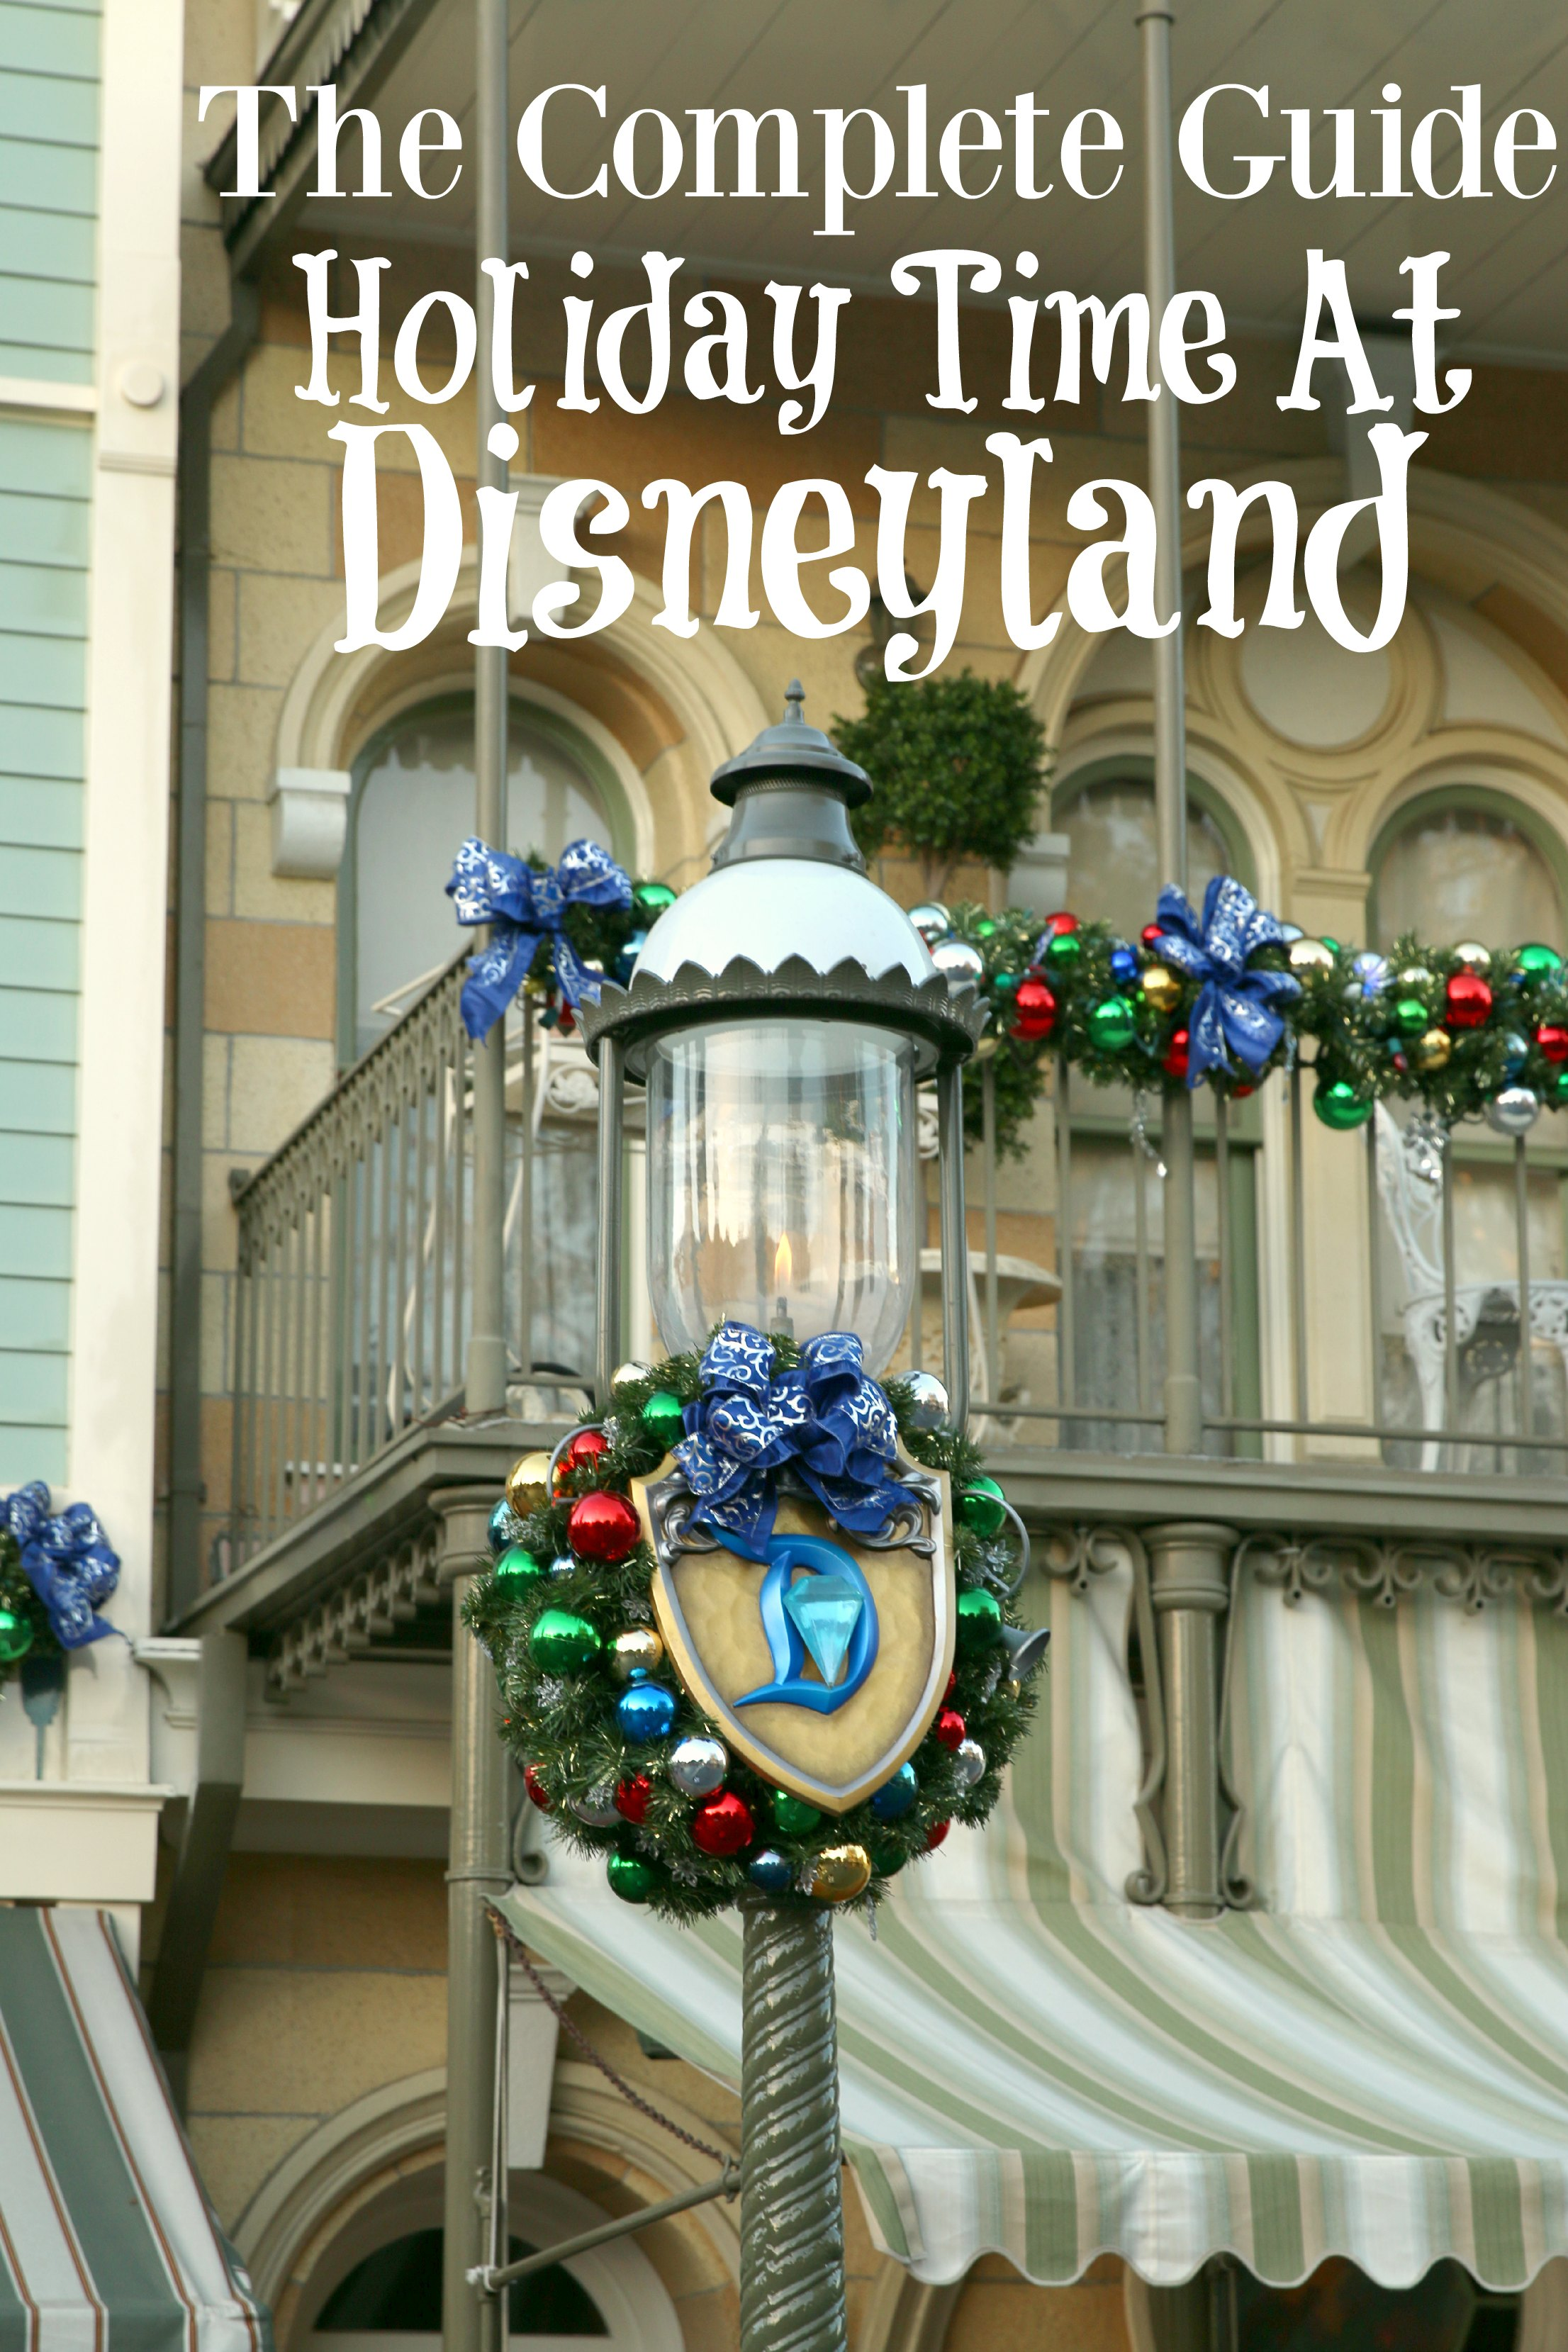 the complete guide holiday time at Disneyland